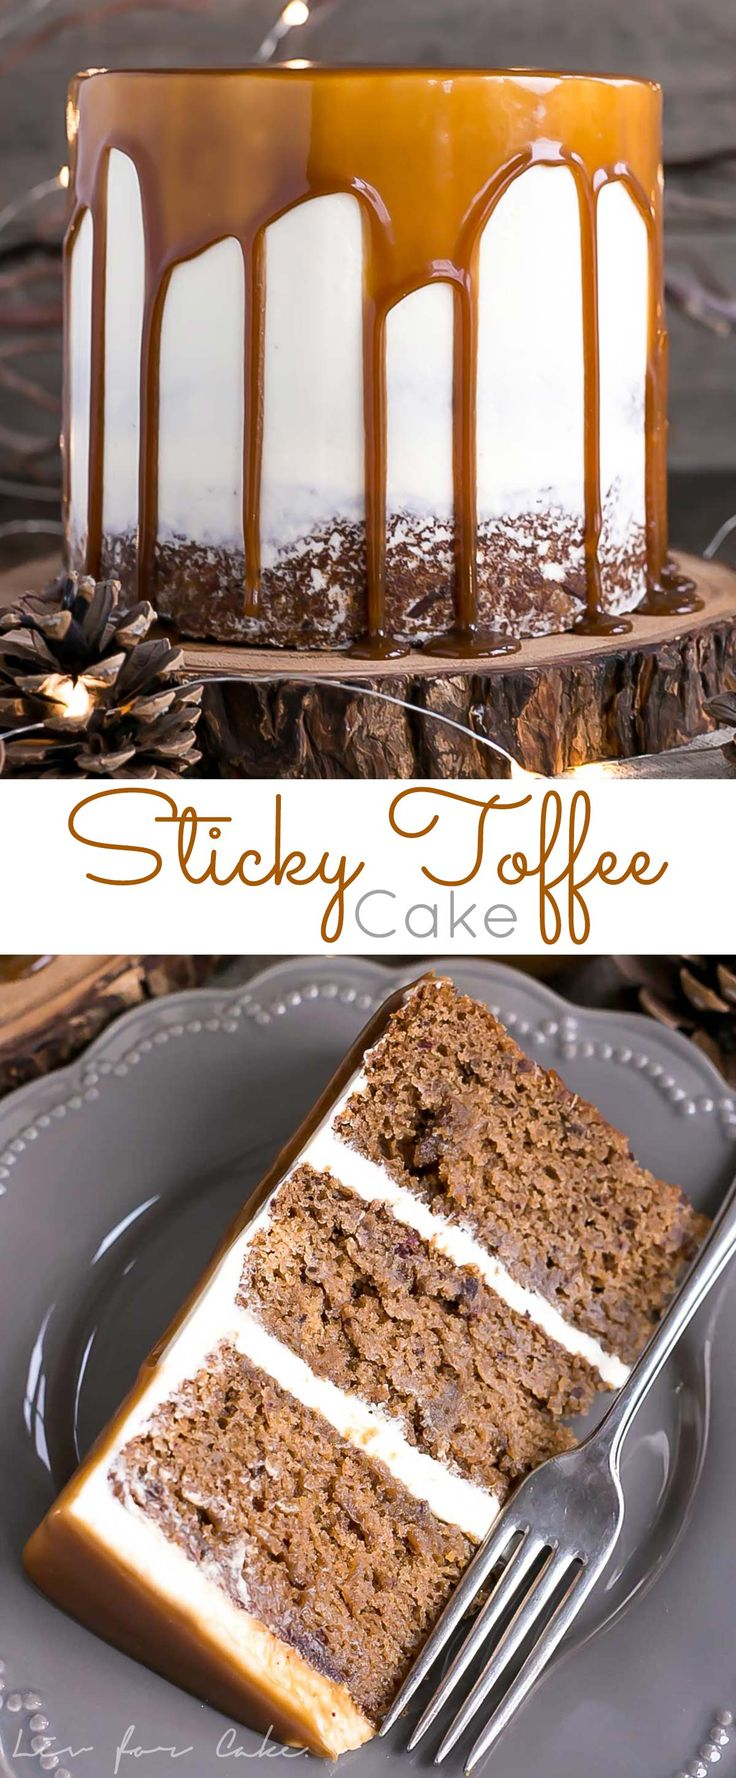 This Sticky Toffee Pudding Cake transforms the classic British dessert into a delicious layer cake! Date infused cake layers, vanilla buttercream, and a decadent toffee sauce. | livforcake.com